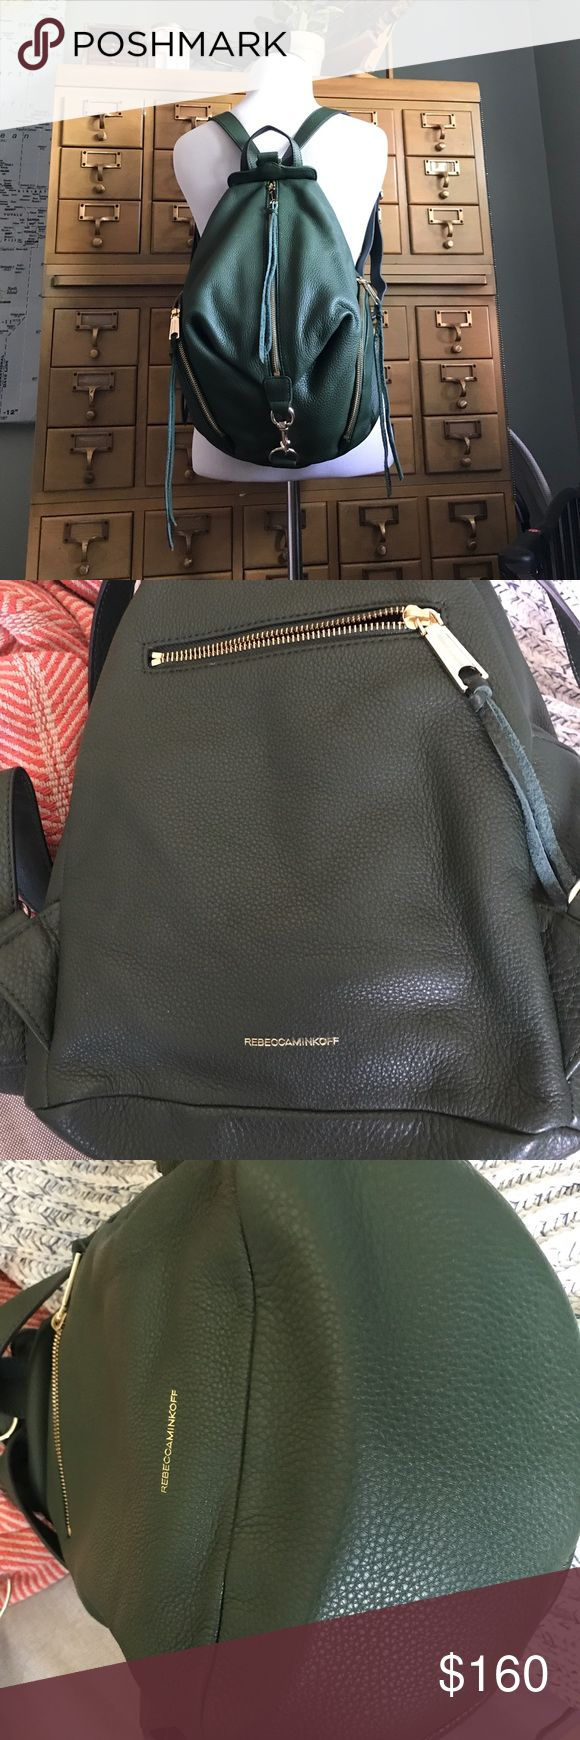 Like new Rebecca Minkoff Julian Backpack Used just once! Like new dark green Rebecca Minkoff backpack with gold hardware. Awesome bag - even works as a diaper bag! Rebecca Minkoff Bags Backpacks